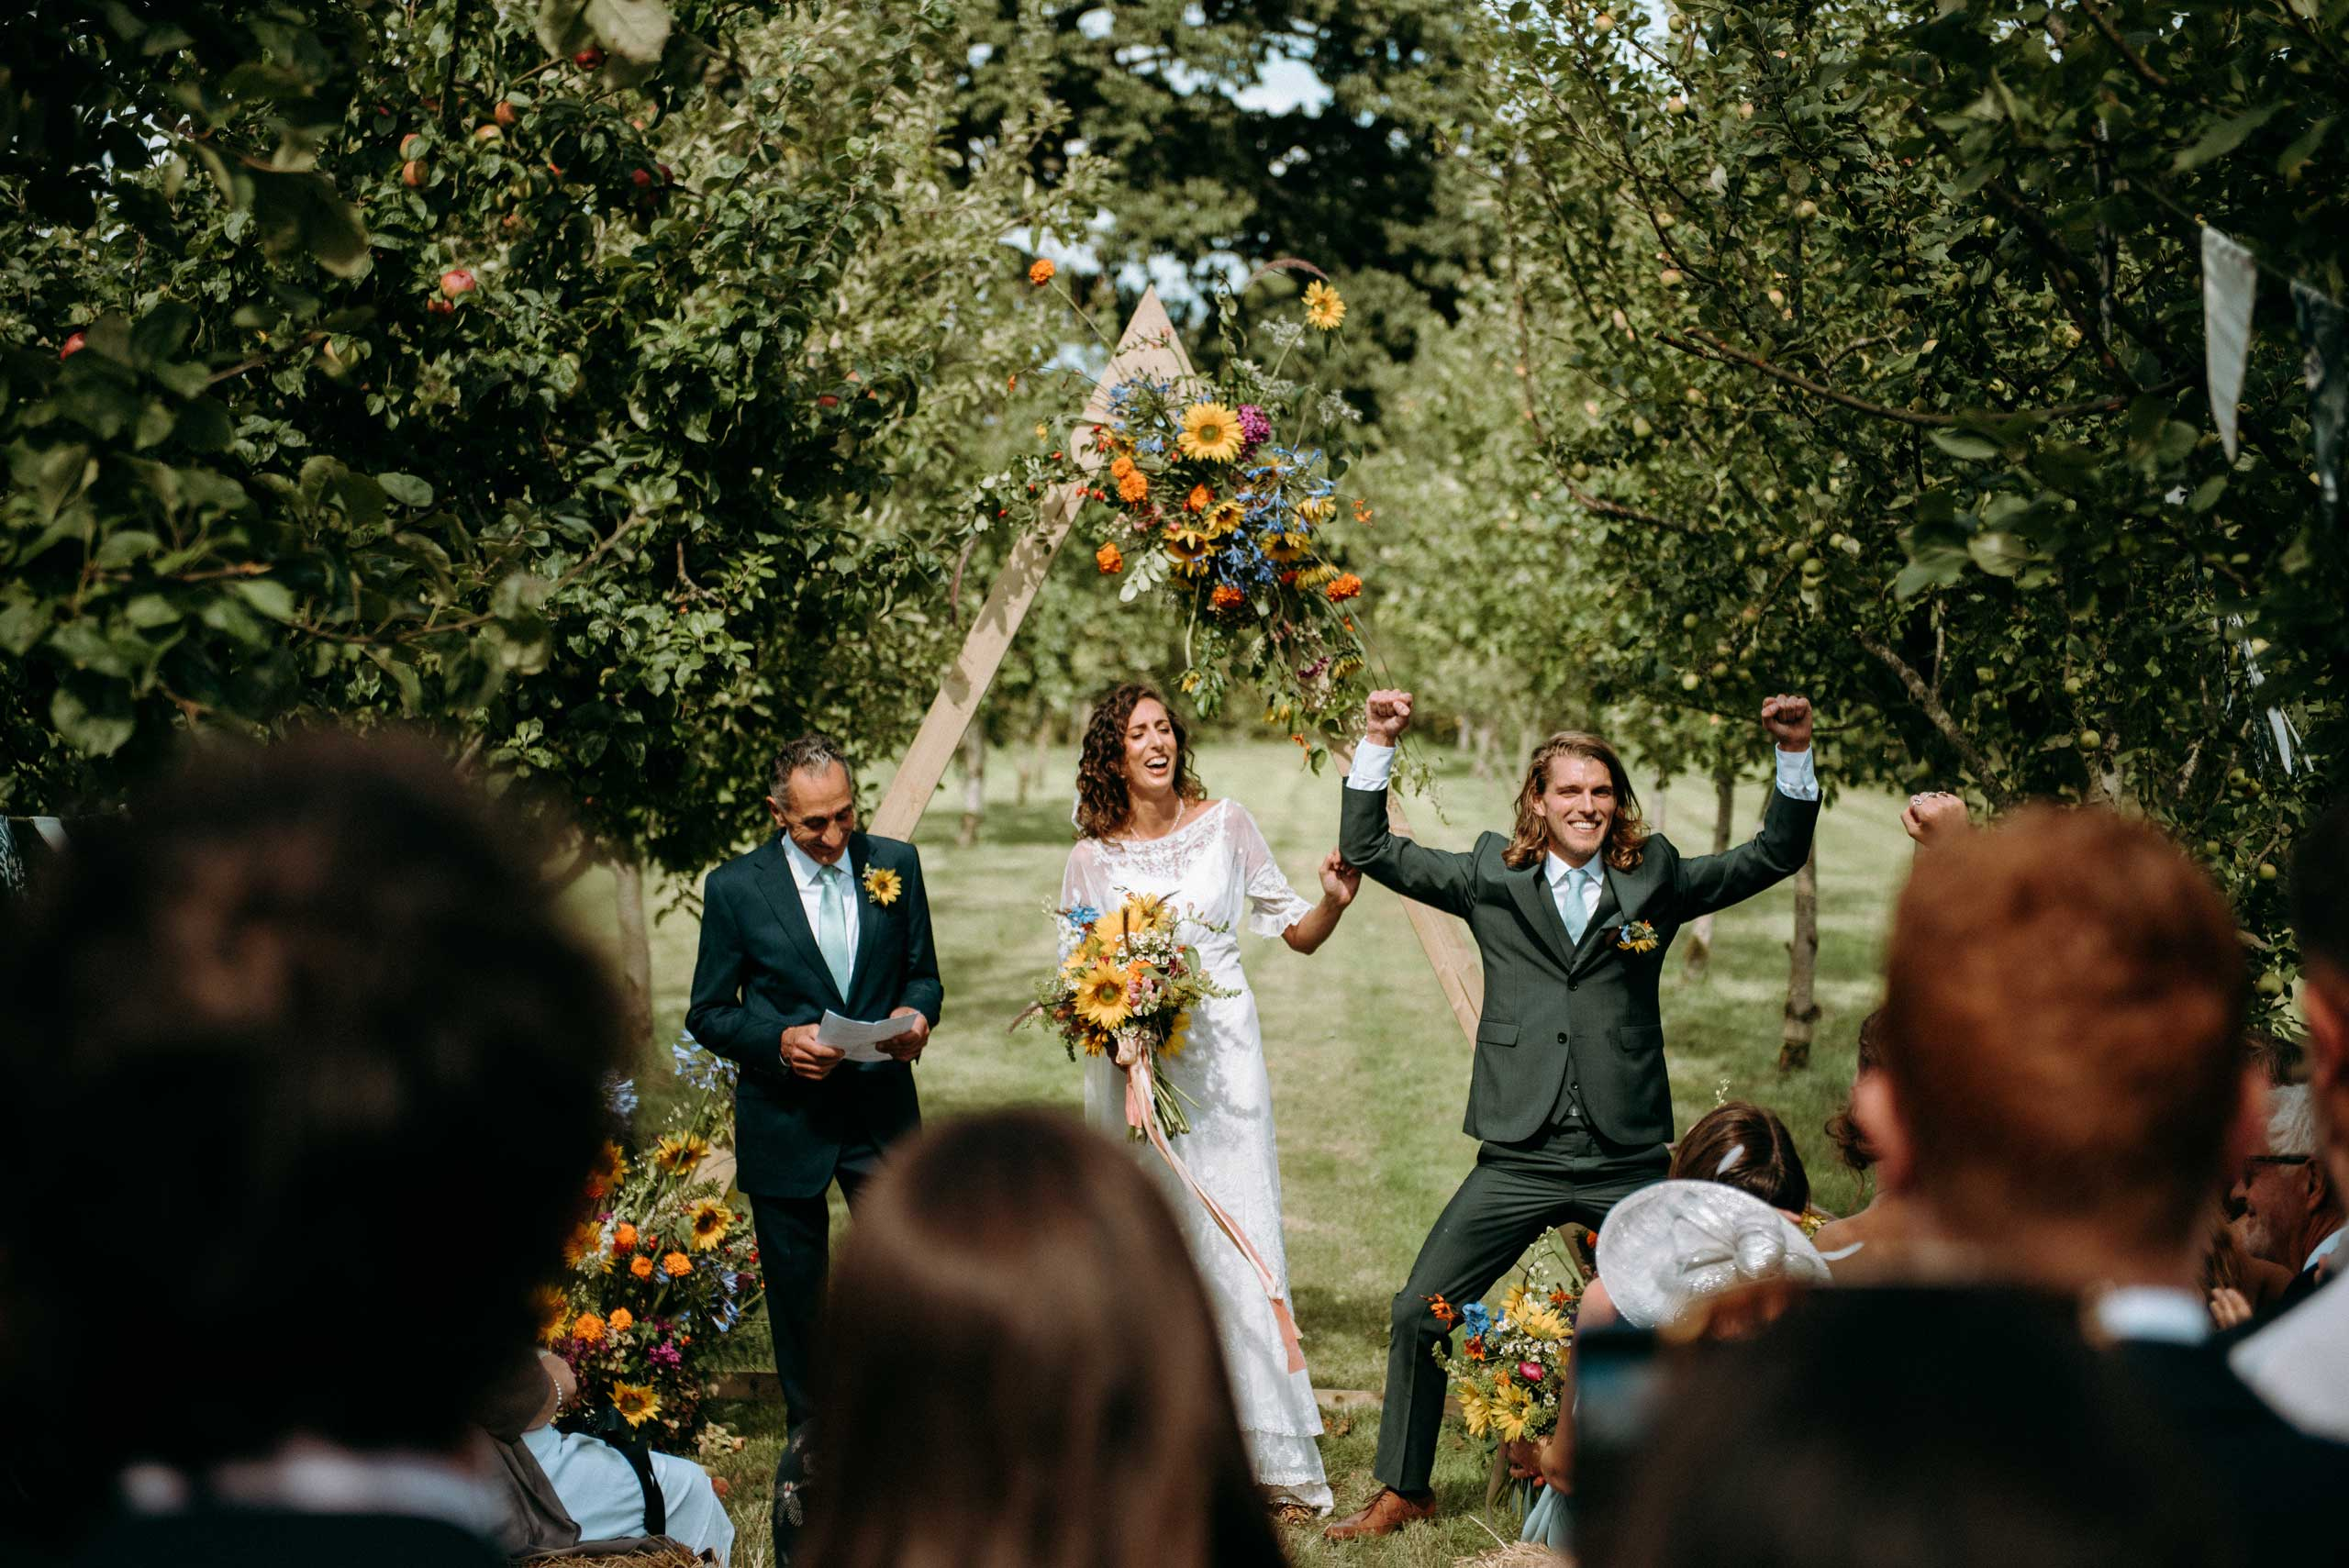 Amelia & Tom's ceremony at Stowford Farm witn the groom jumping for joy and fist pumping